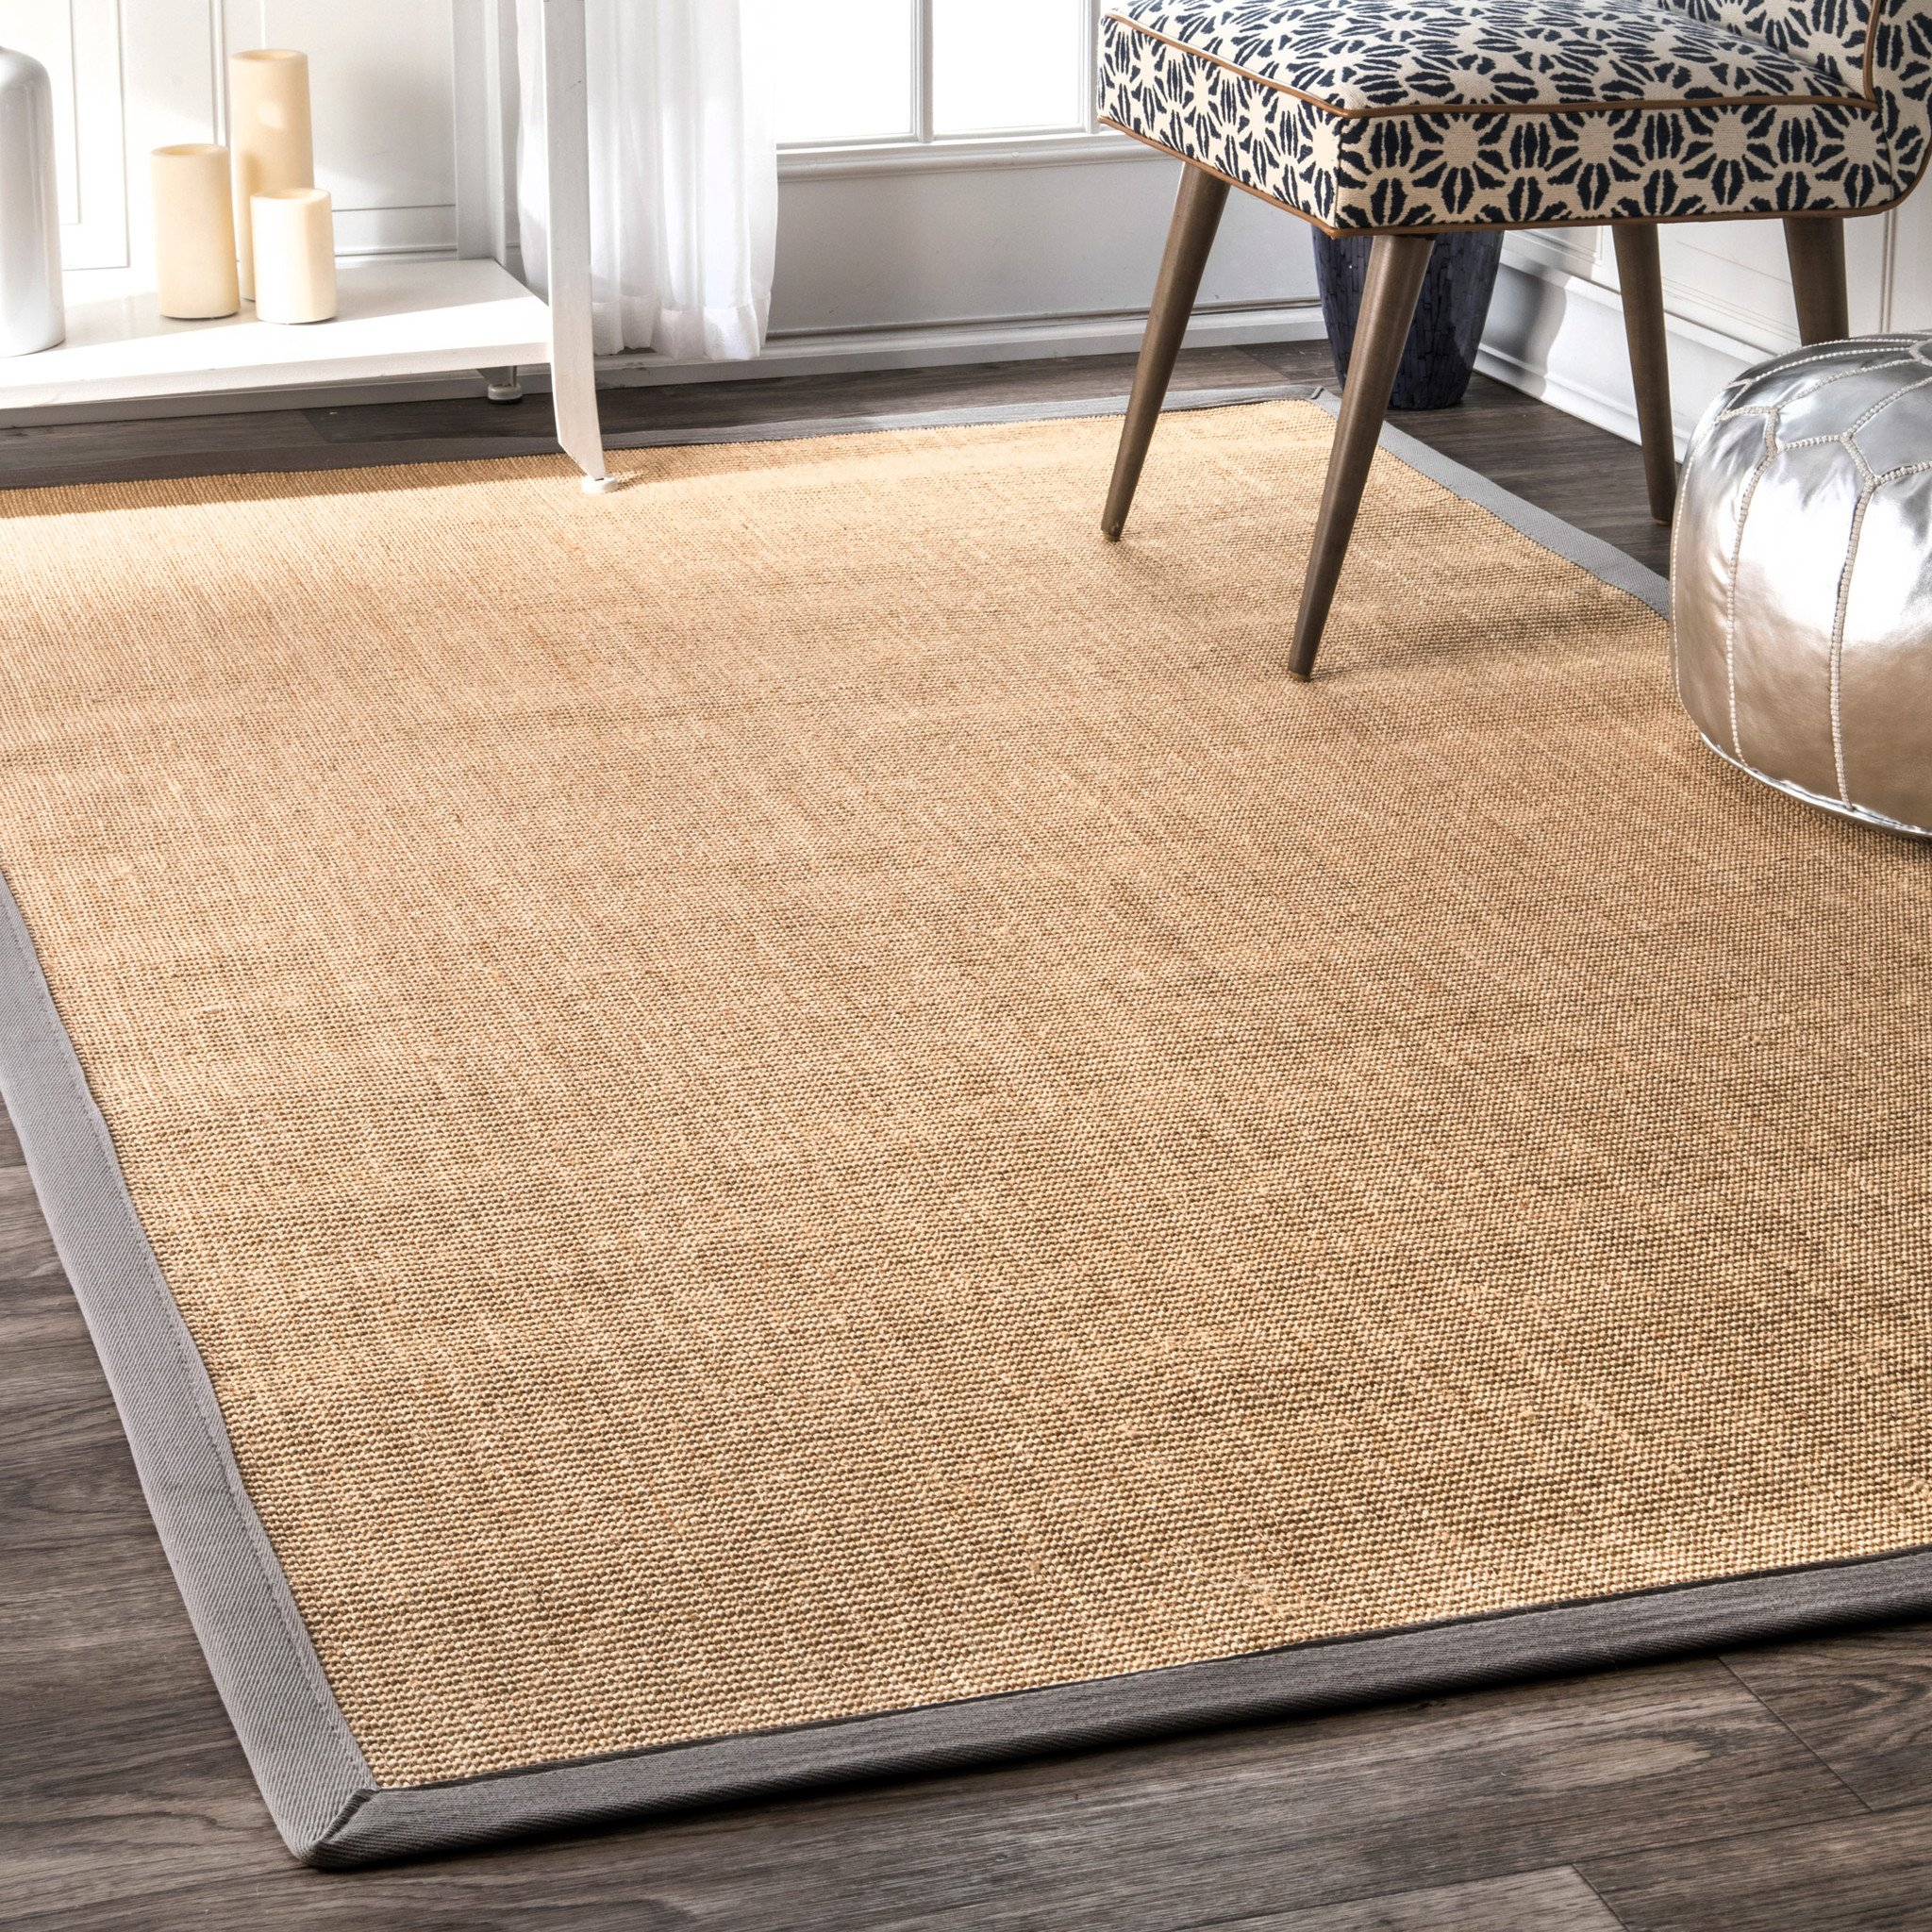 The practical uses of a sisal rug